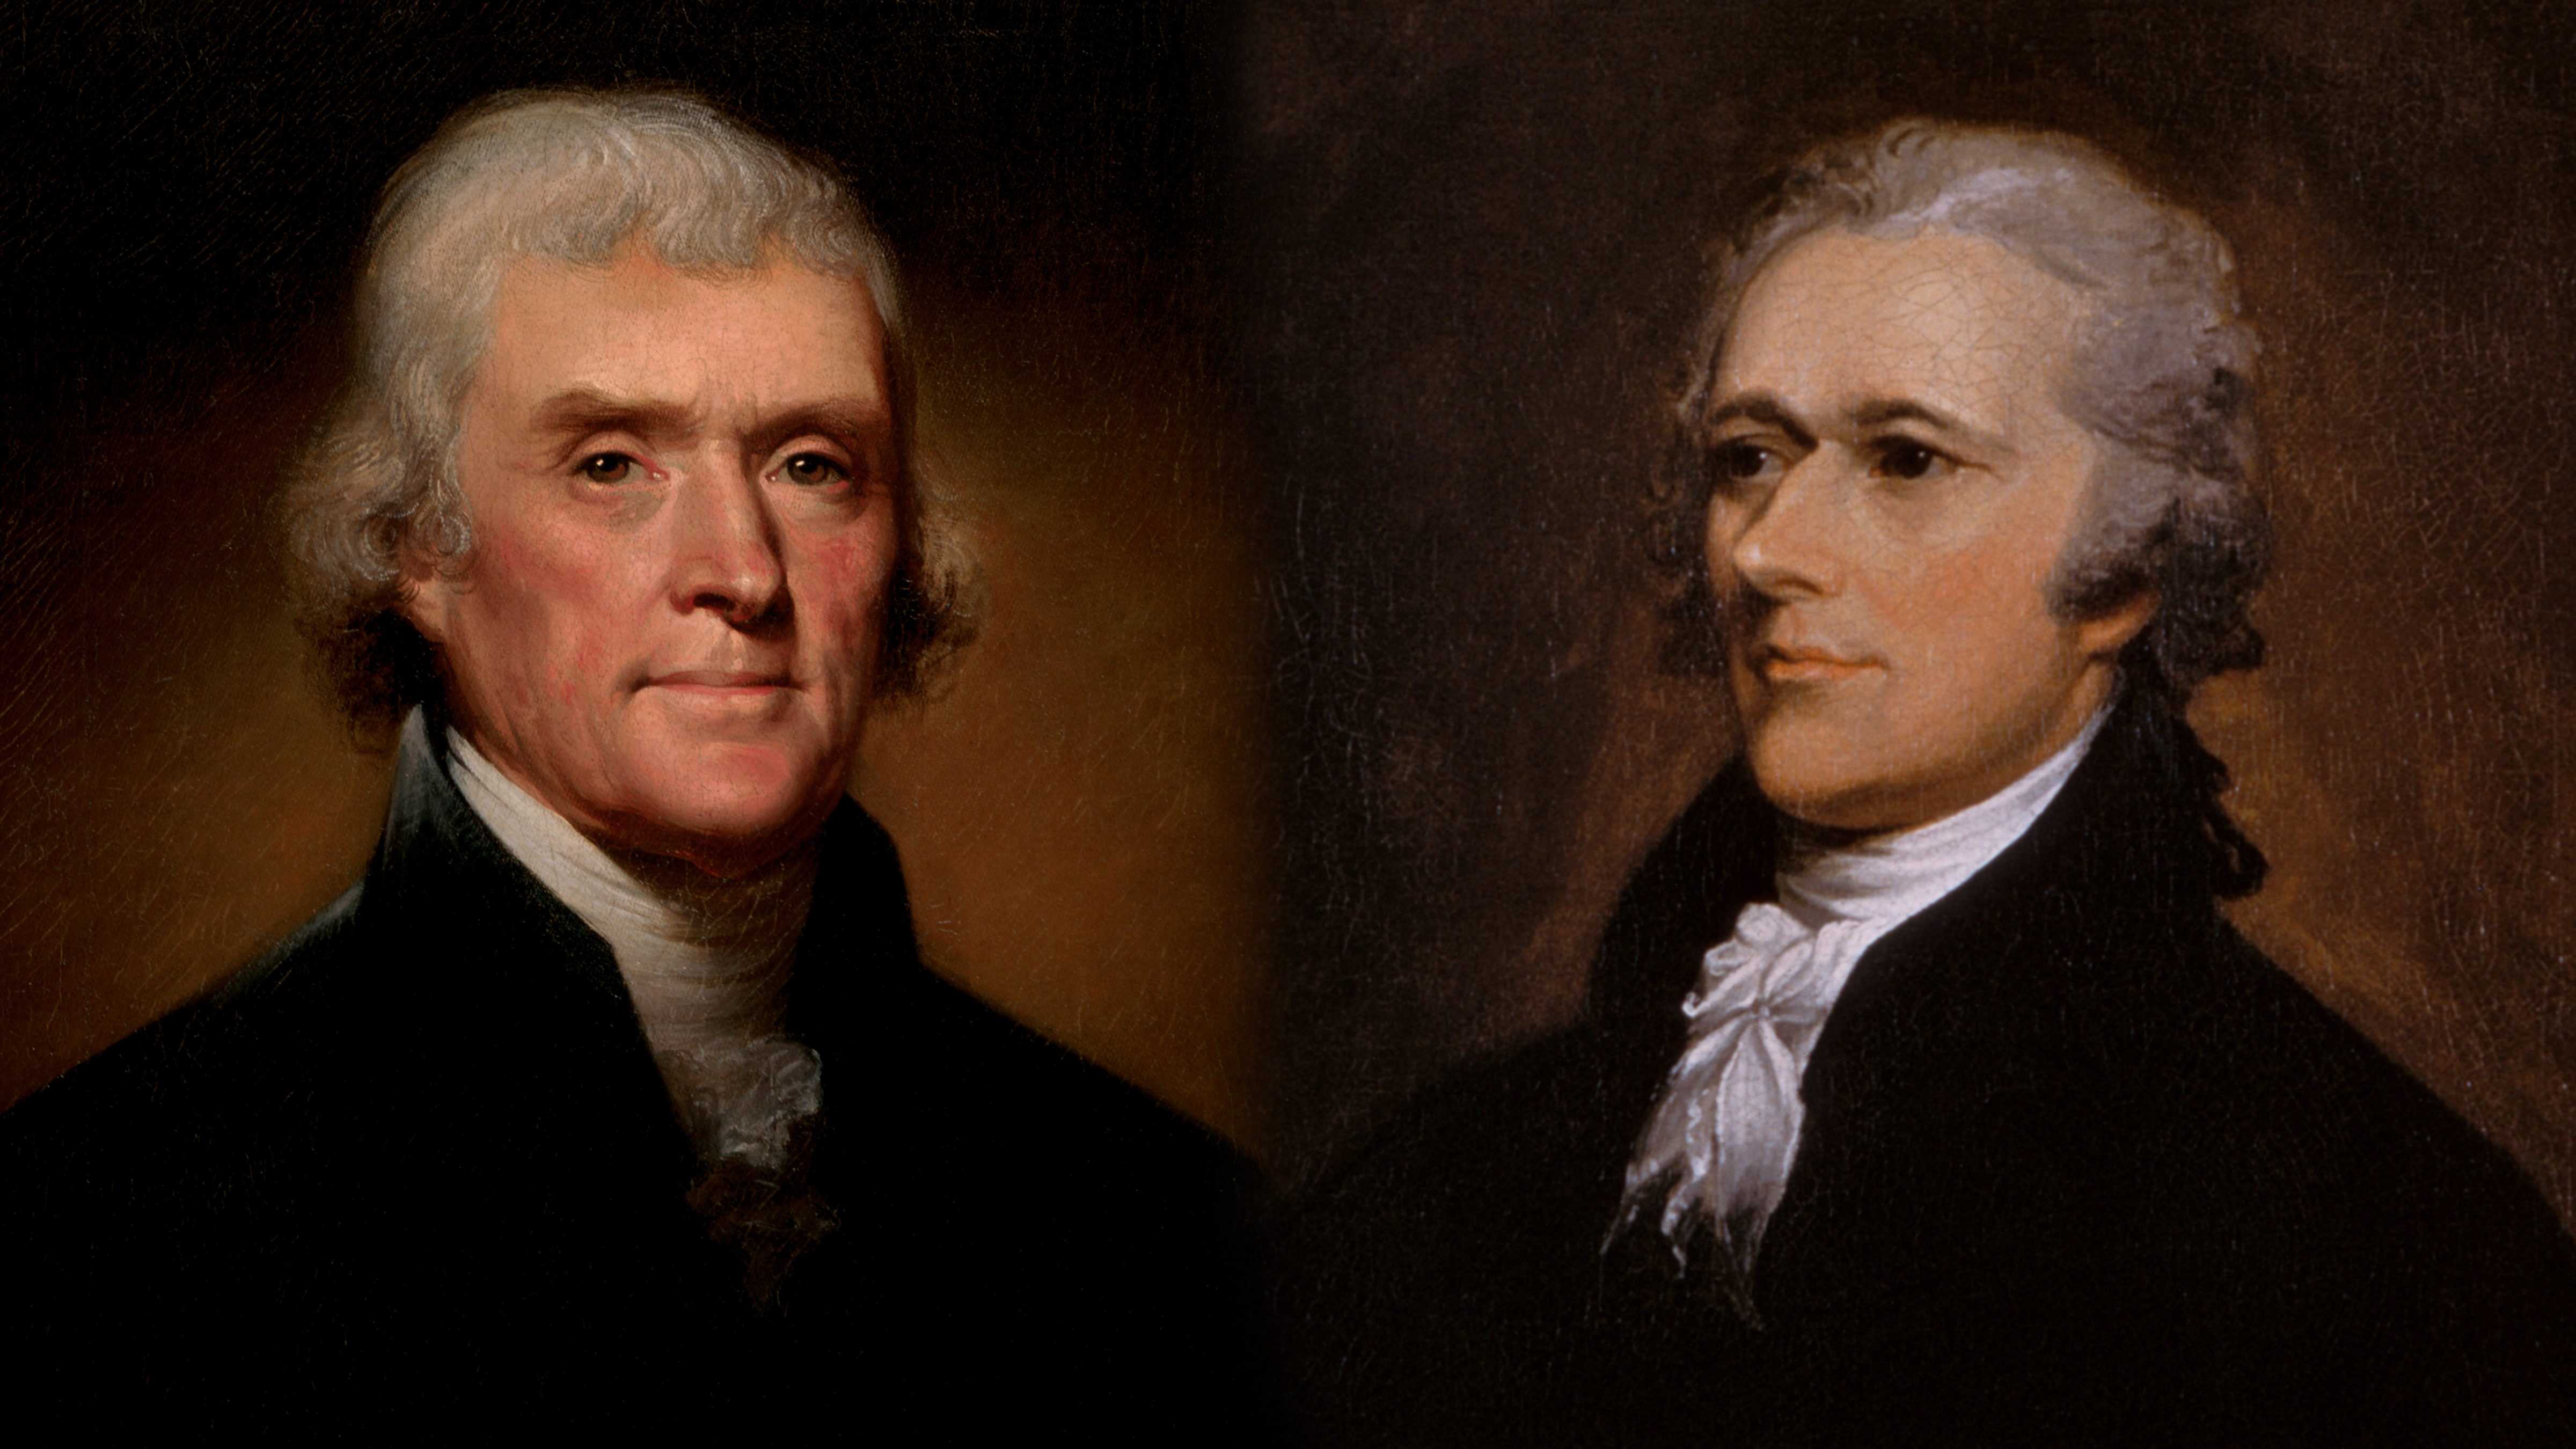 what did hamilton and jefferson disagree on